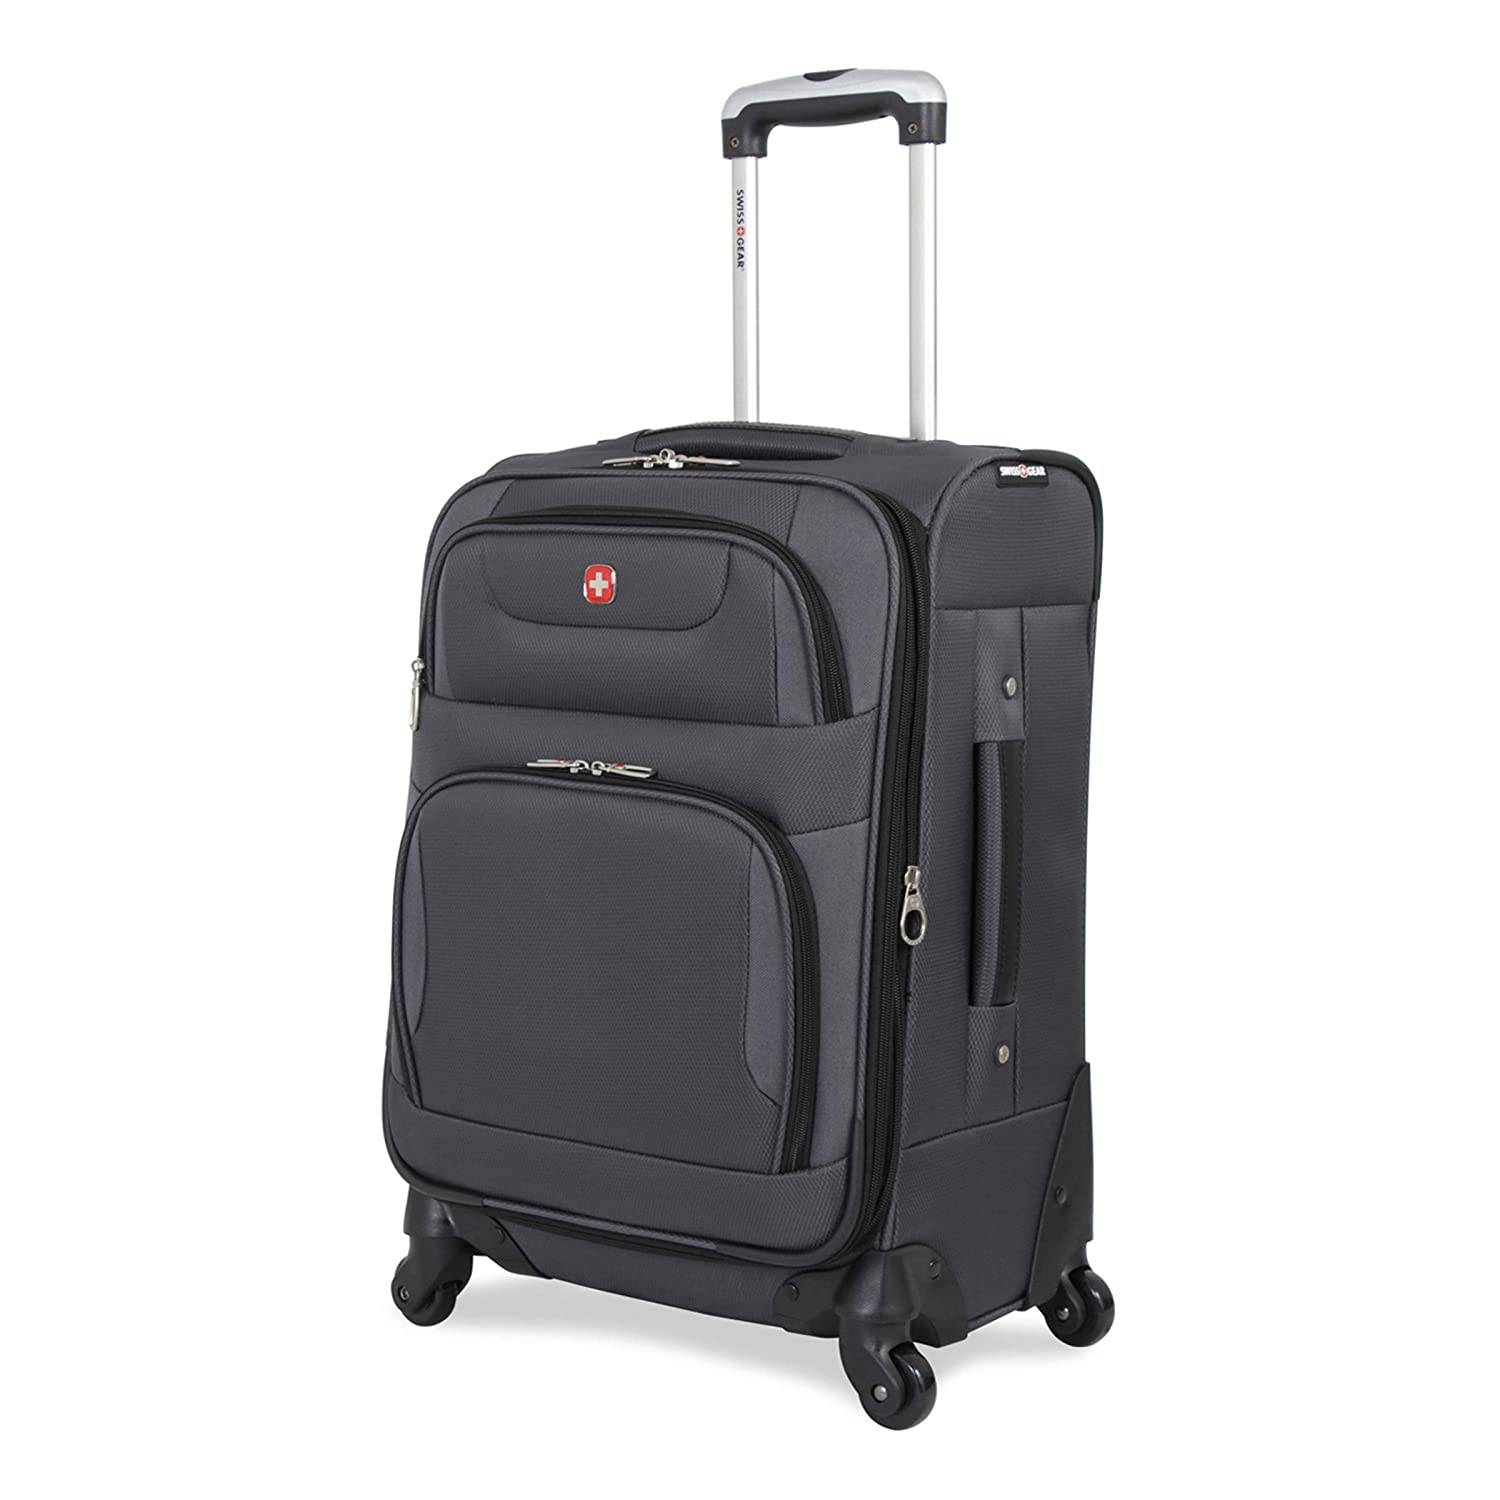 658f9ed8056f SwissGear Spinner Luggage Collection Gray 20